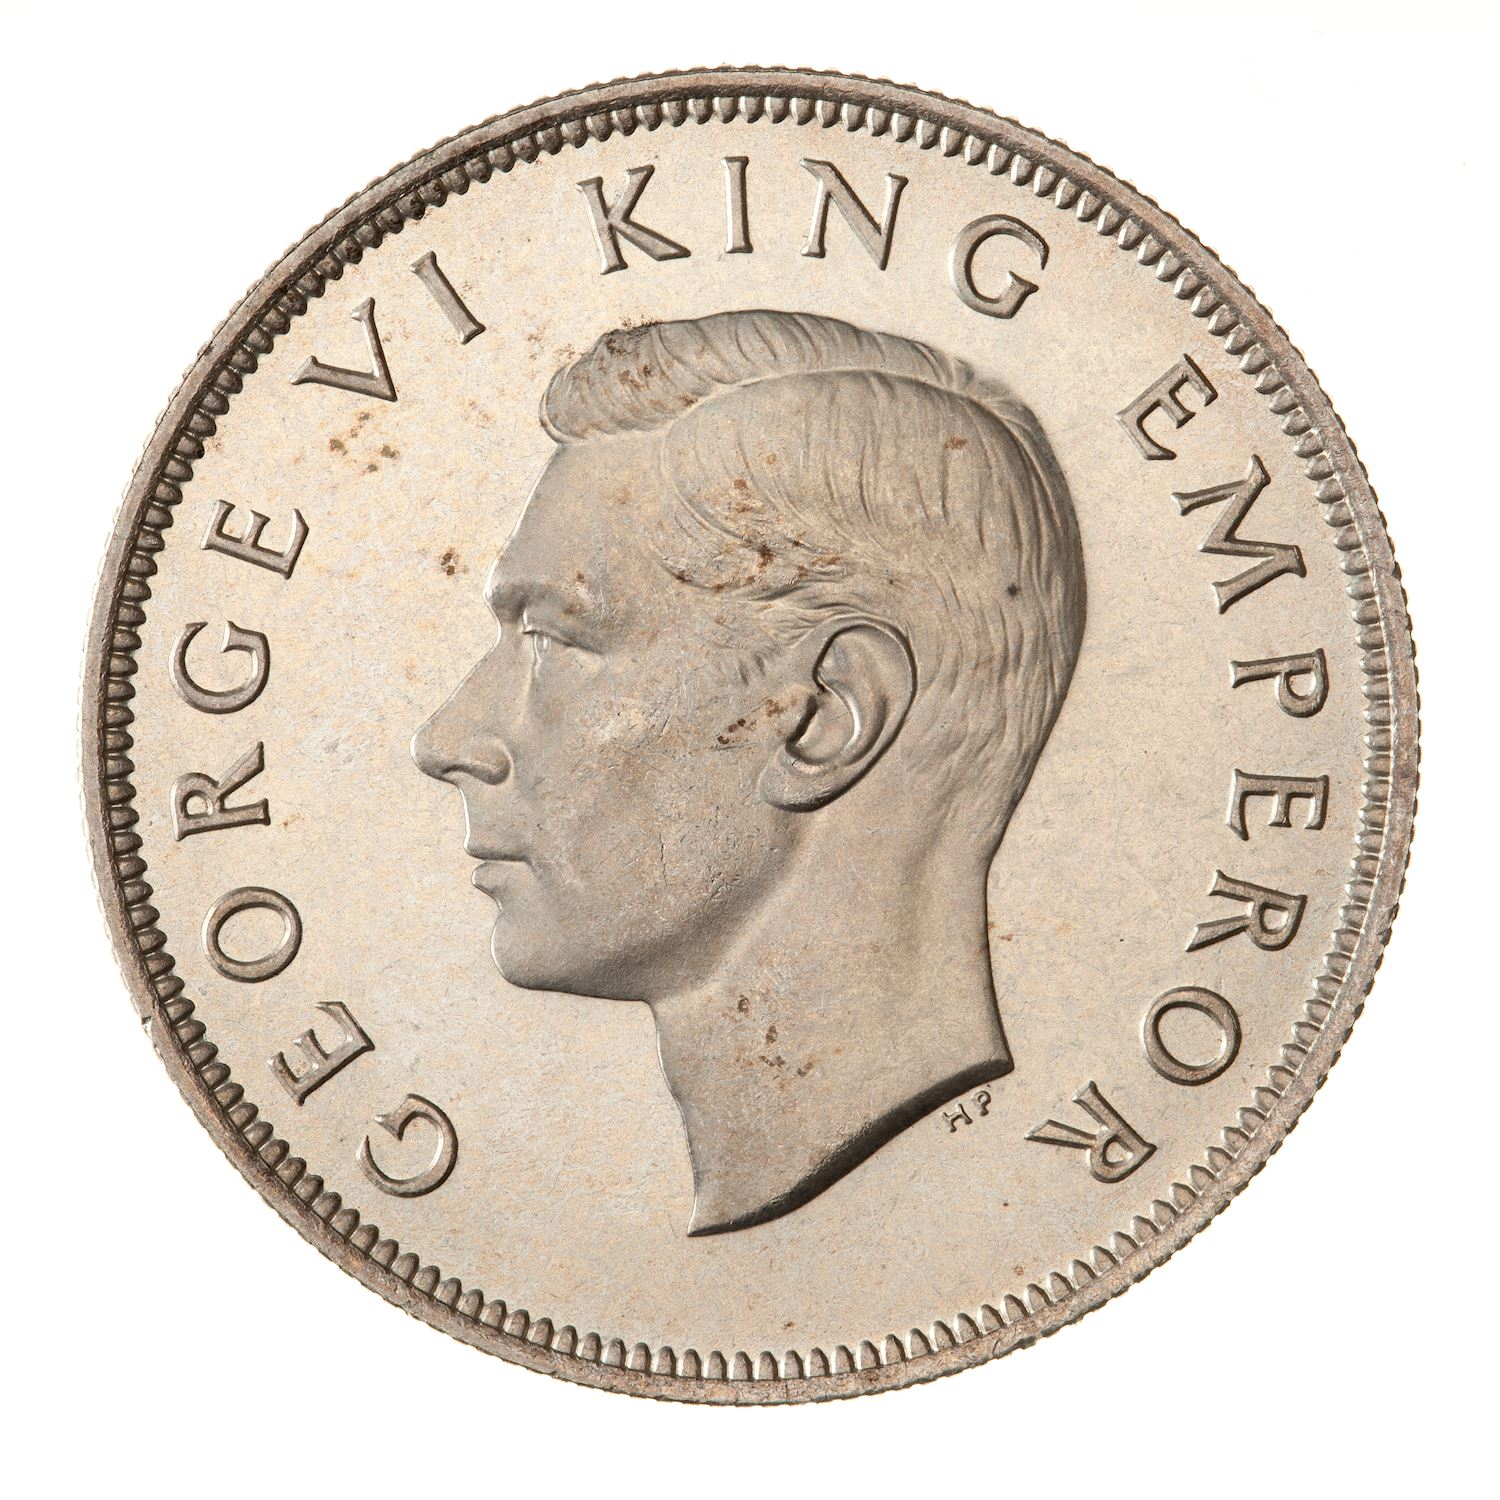 Half Crown (Silver): Photo Proof Coin - 1/2 Crown, New Zealand, 1940